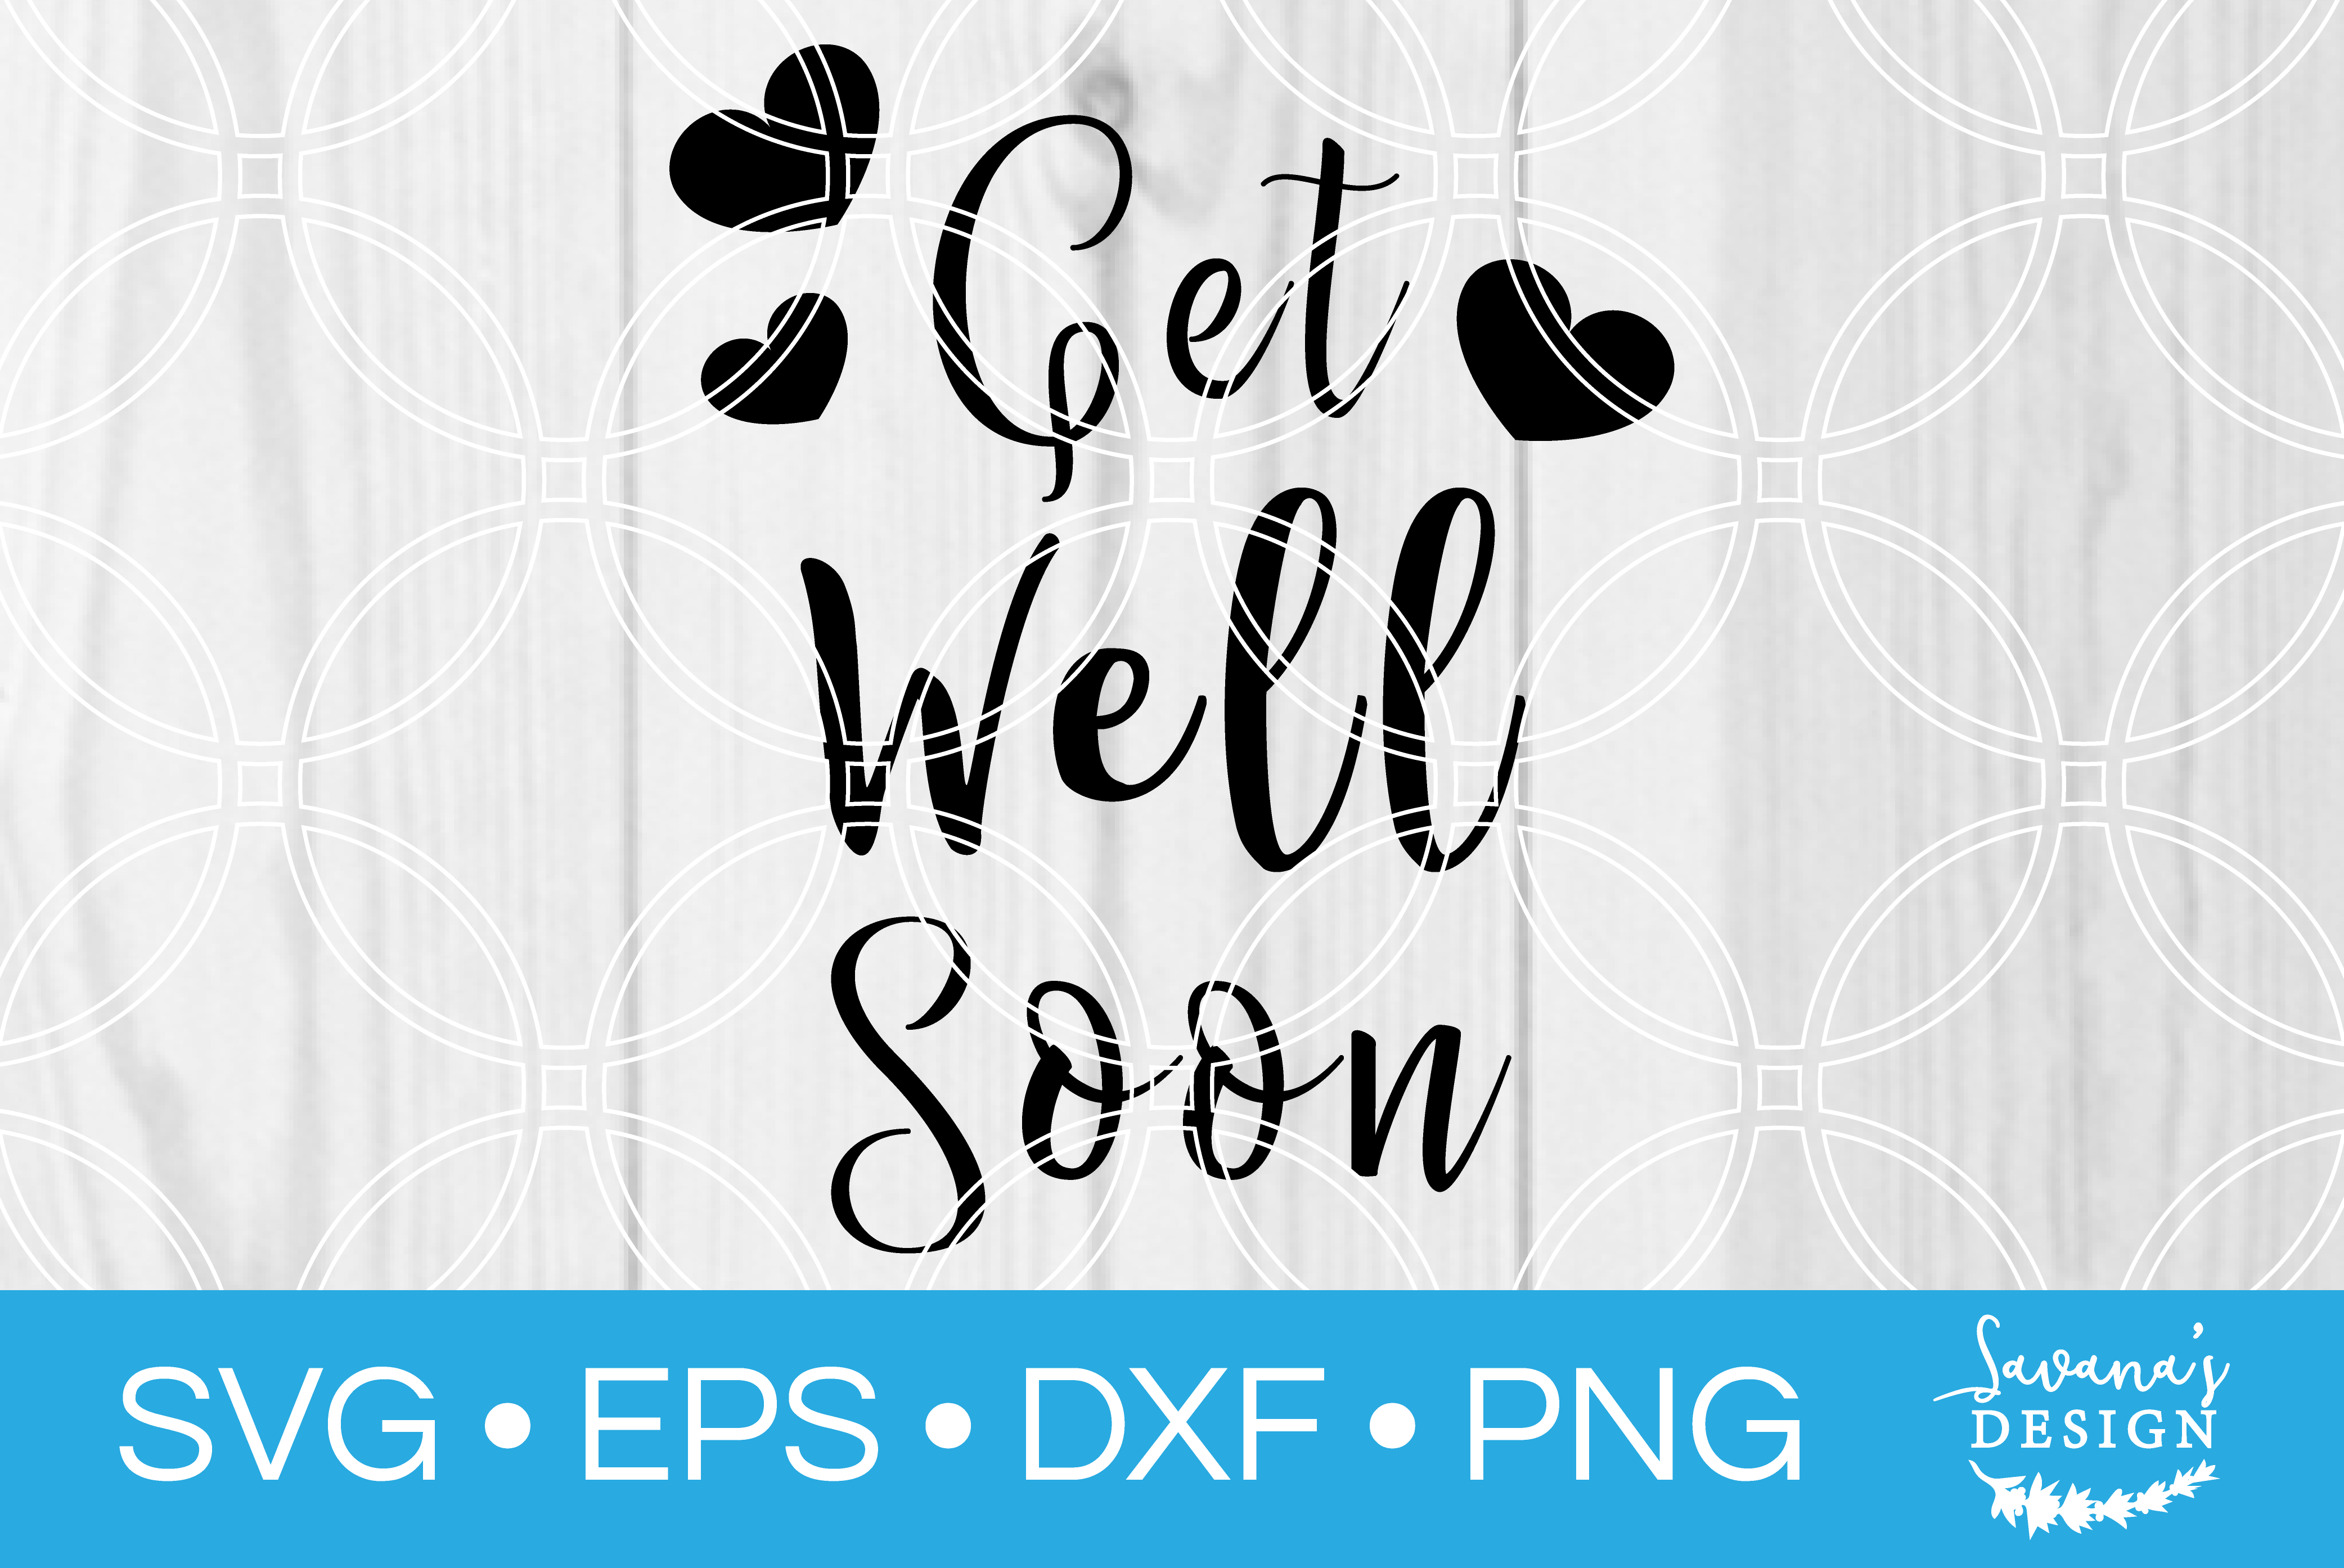 Get Well Soon Png Black And White - Get Well Soon - SoFontsy